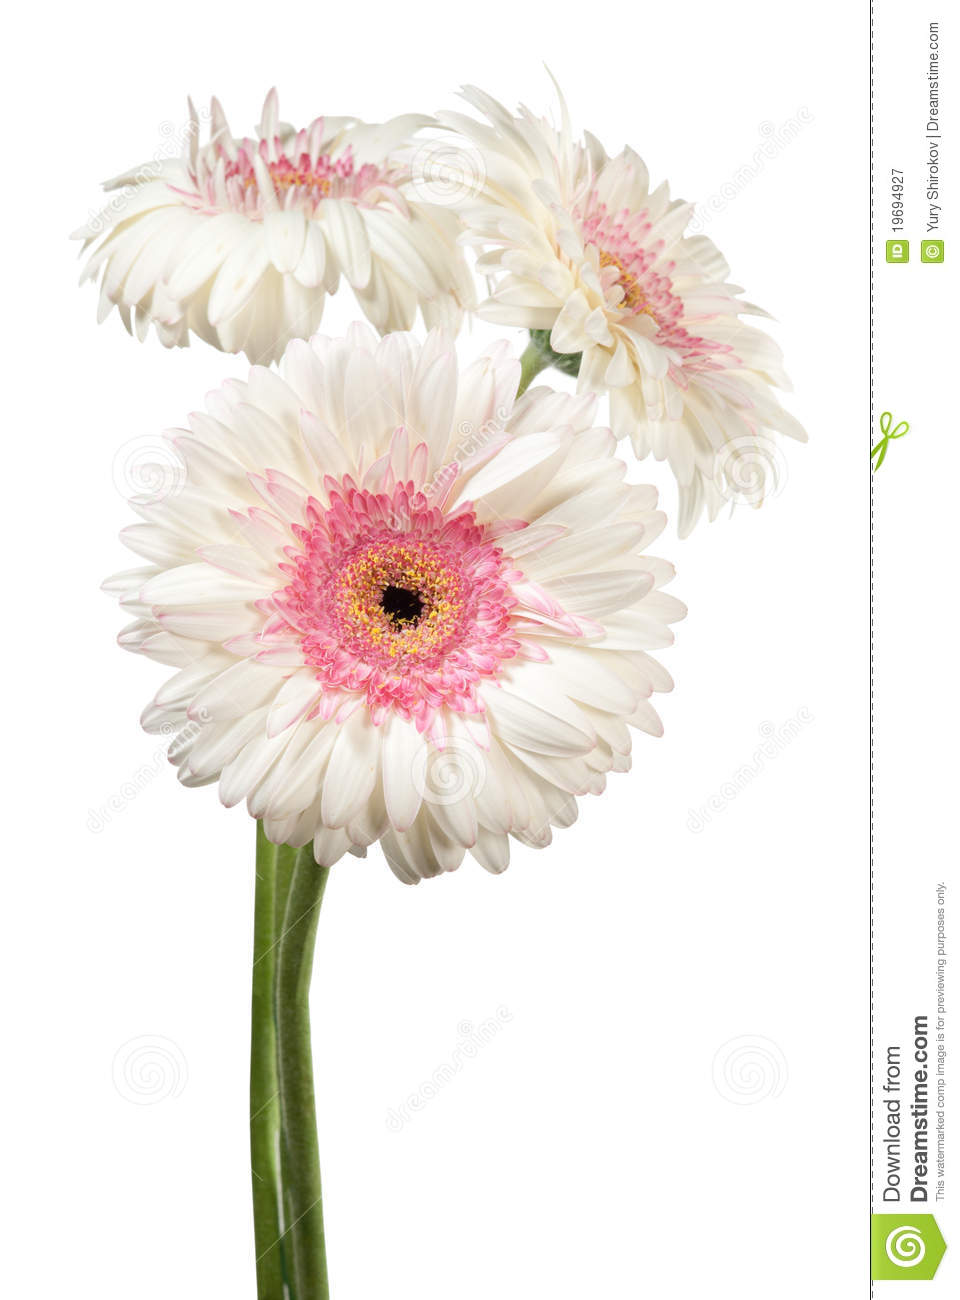 Gerbera flowers on white stock image image of life nosegay 19694927 download comp mightylinksfo